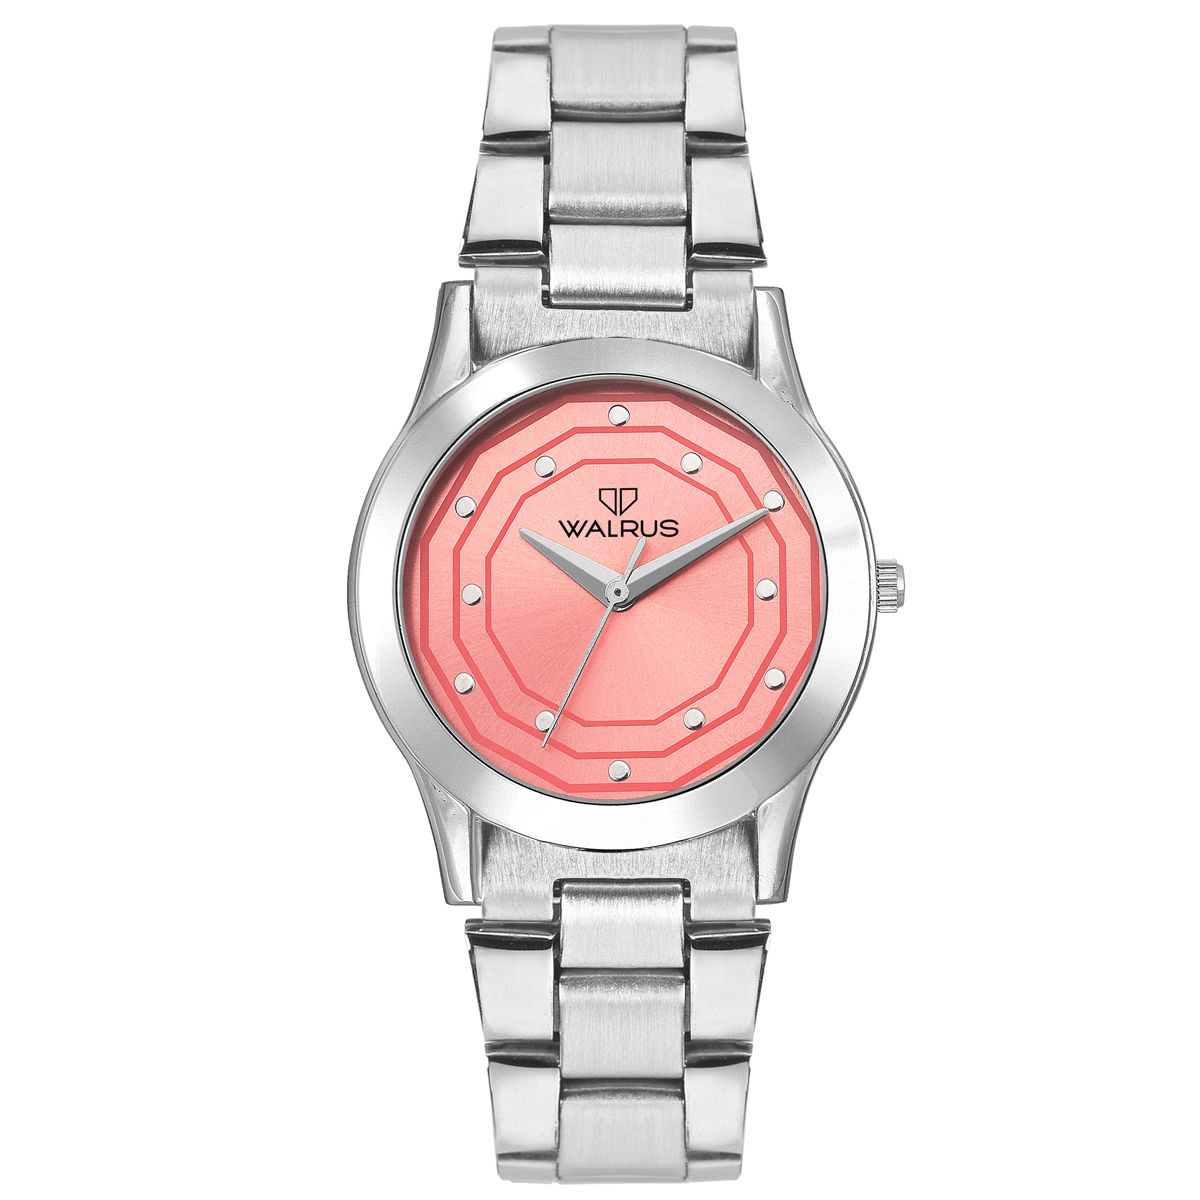 Walrus Anna Pink Color Analog Women Watch -WWW-Anna -120707